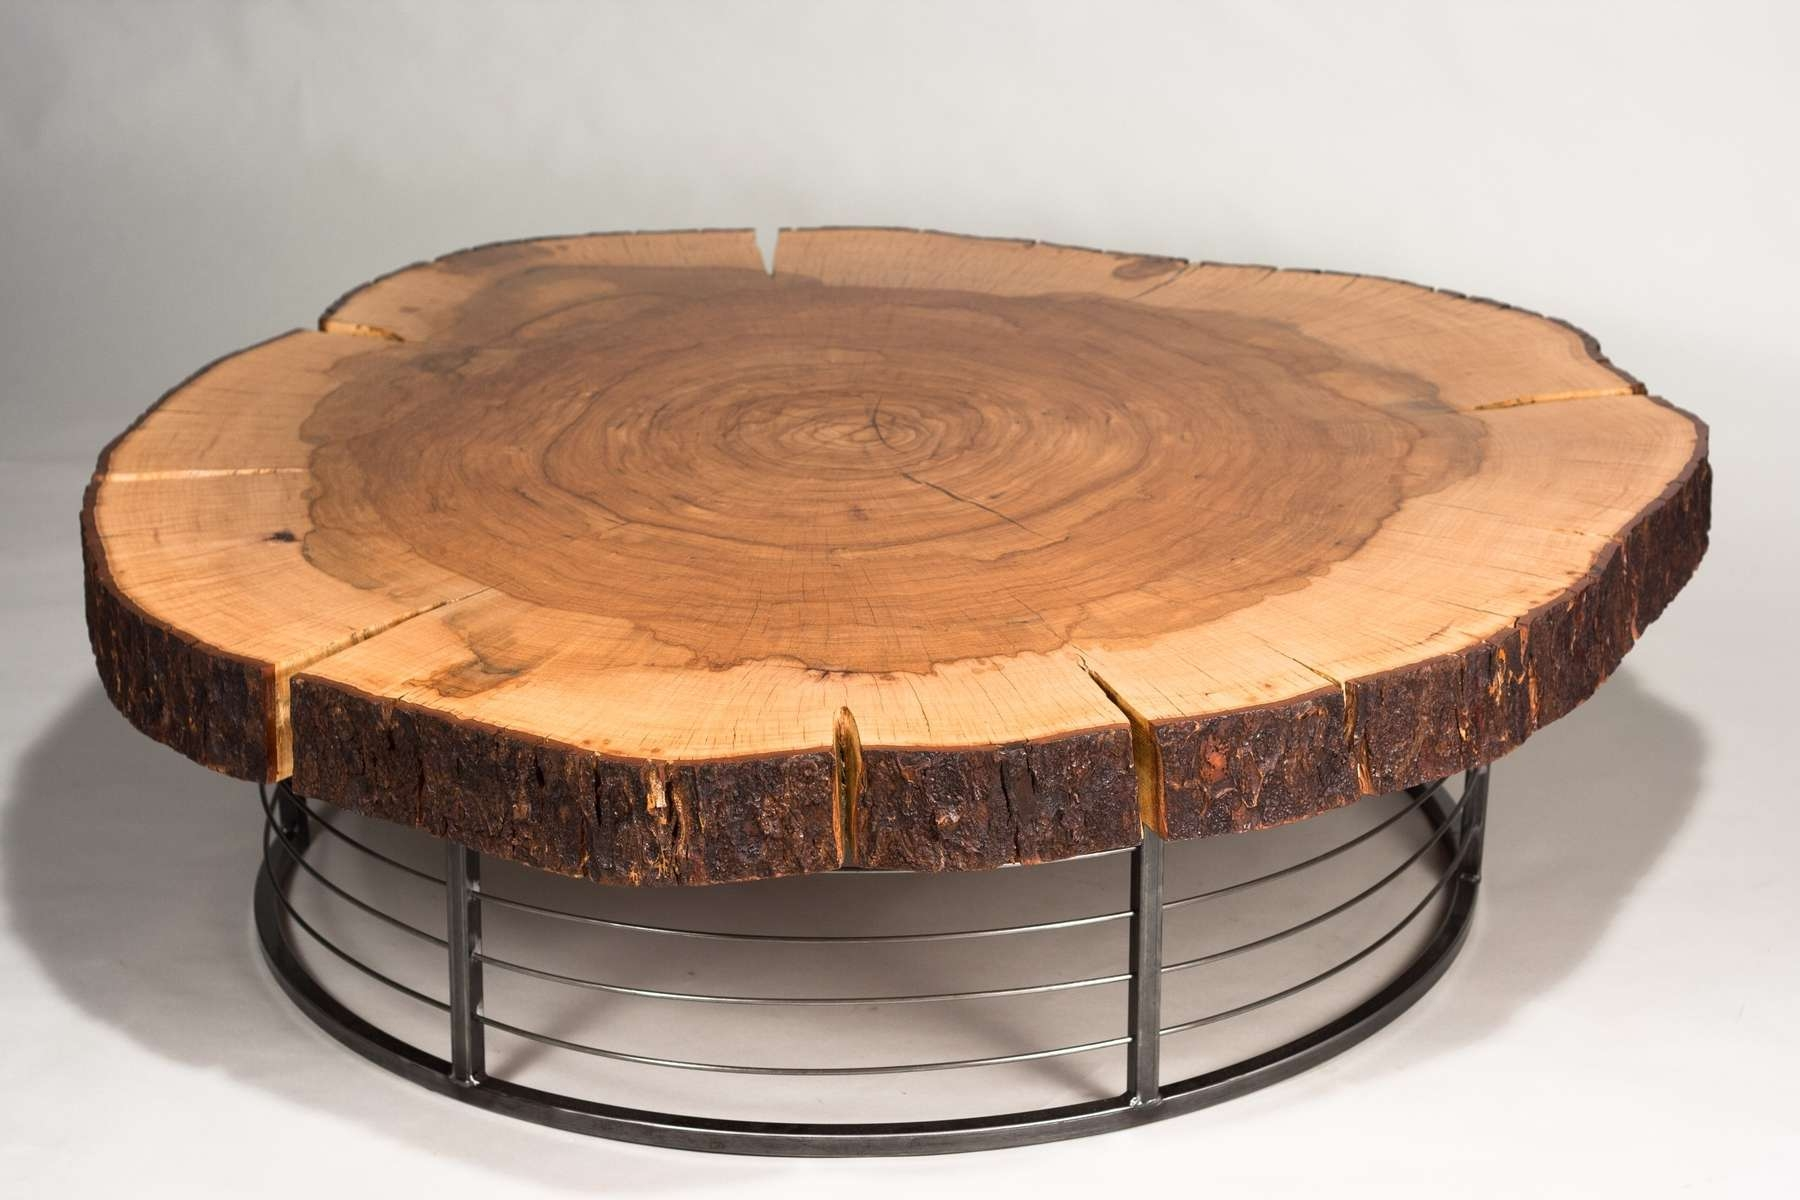 Useful Coffee Tables Made From Tree Trunks For Your Home Design Regarding Famous Tree Trunk Coffee Table (Gallery 5 of 20)